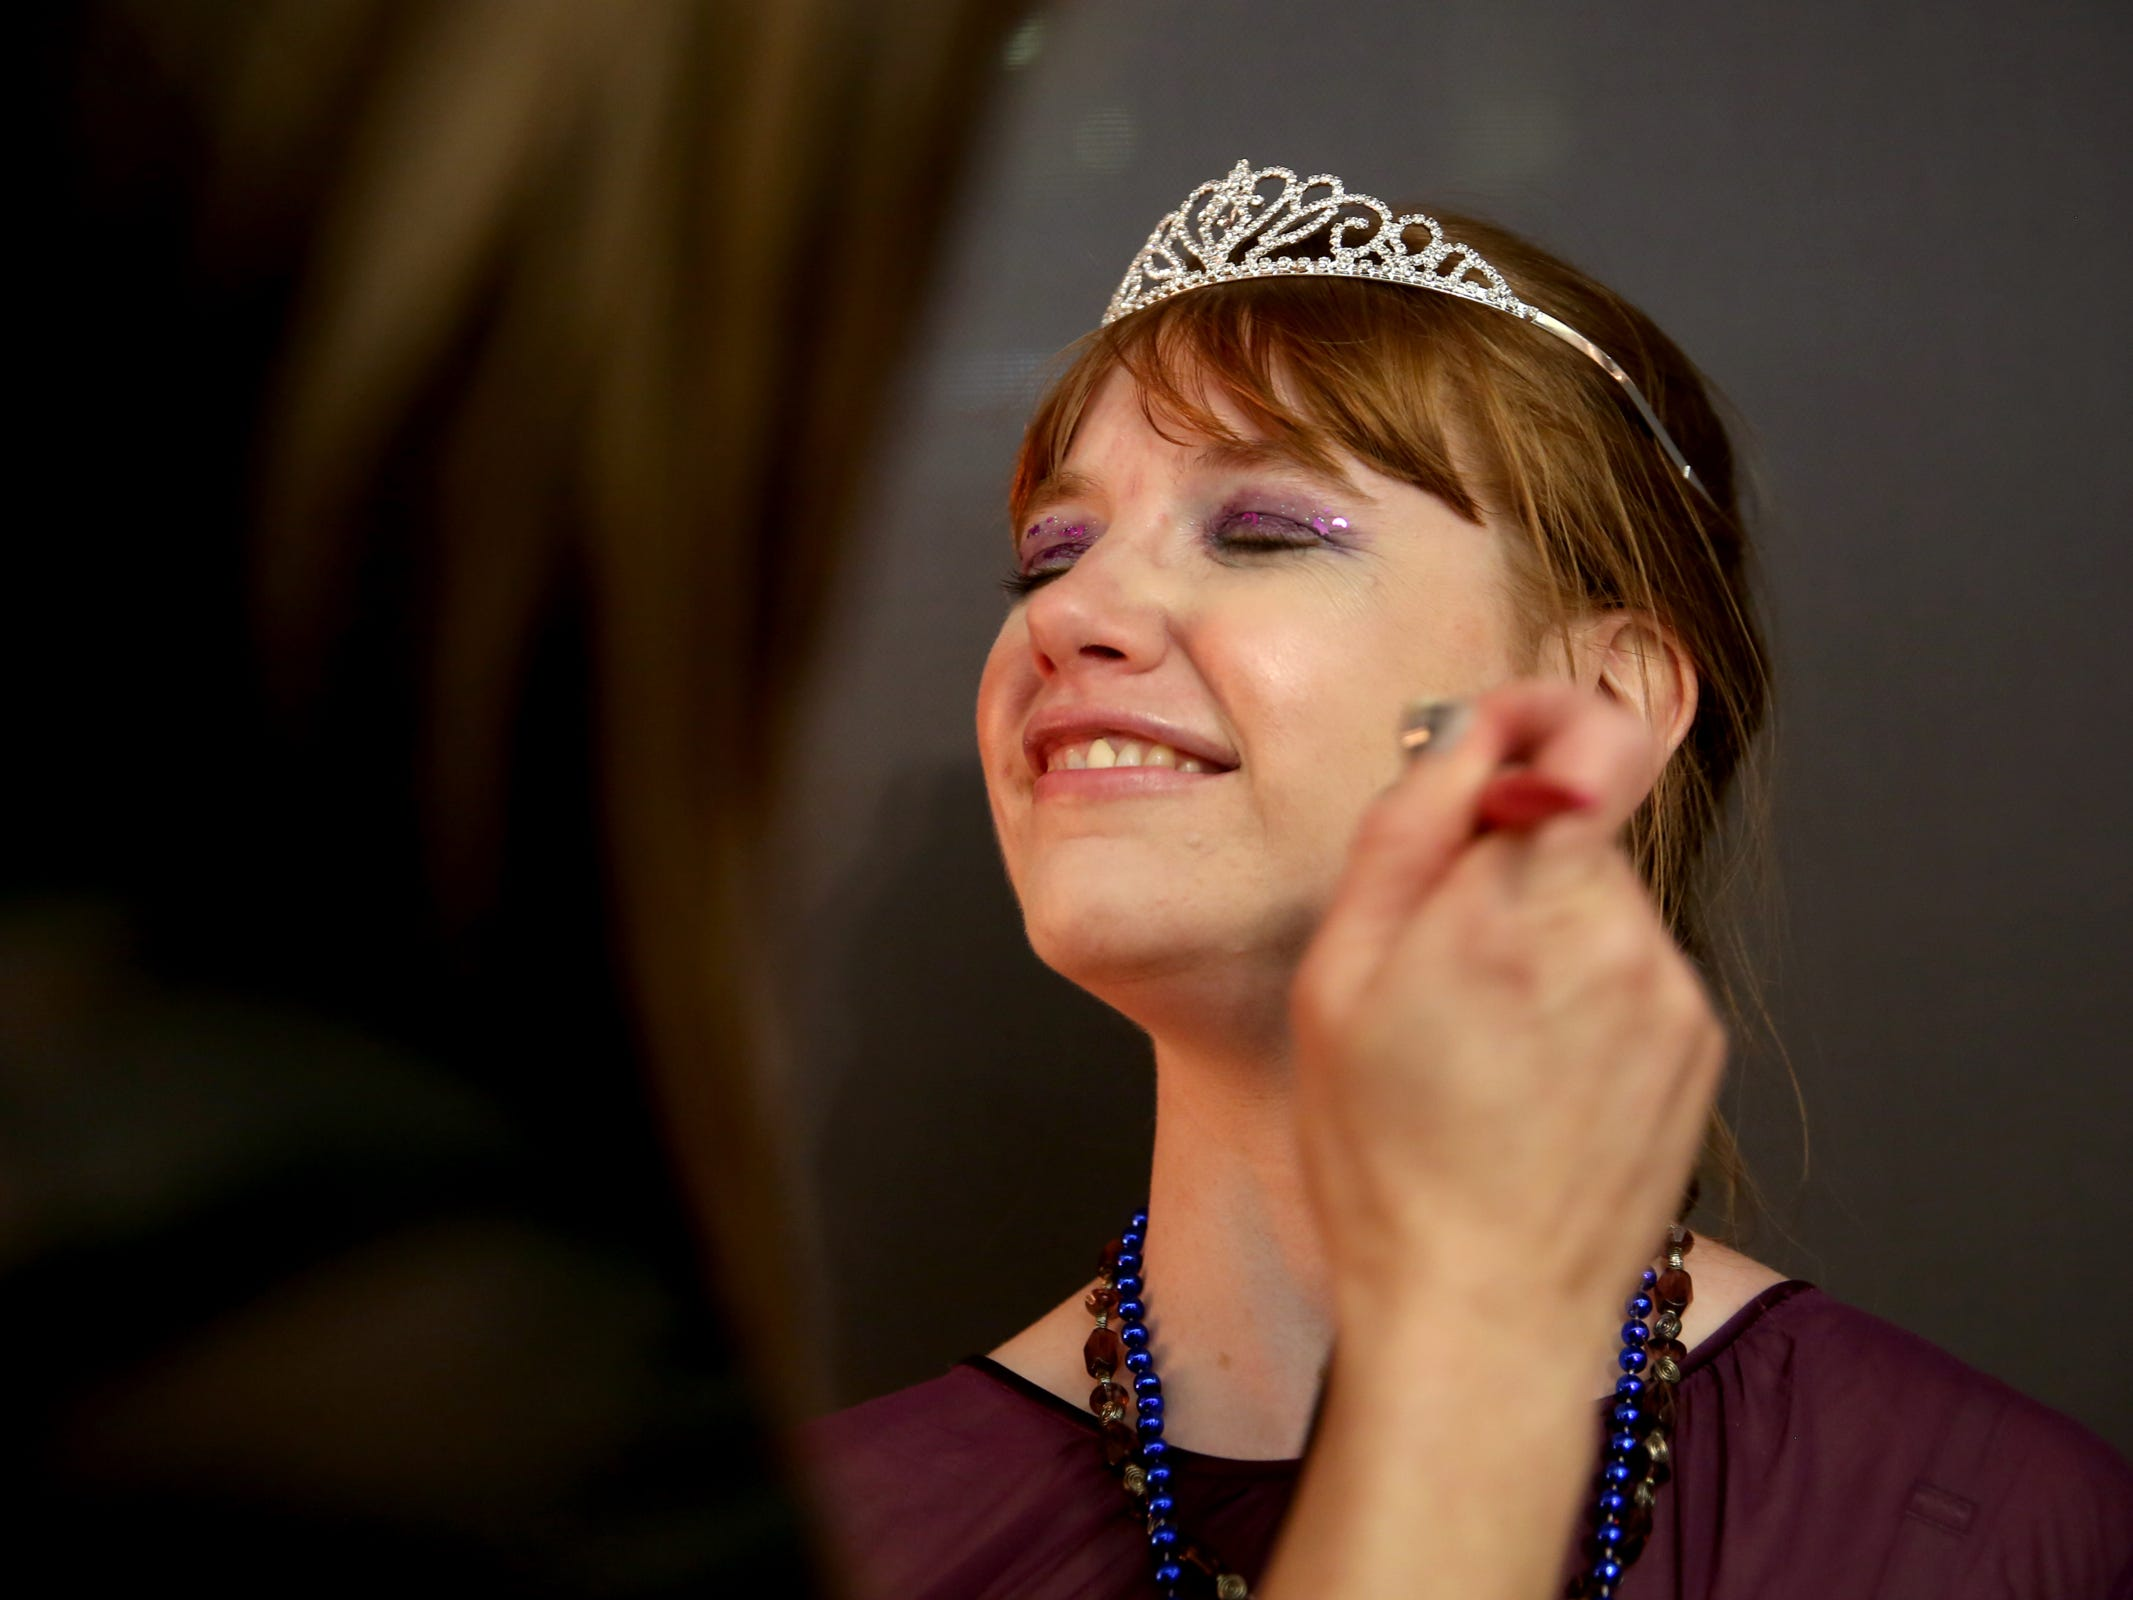 Kris Burden, 36, of Salem, has her airbrush makeup done by volunteer Kathy Tope at Night to Shine, a prom night experience for people with special needs, at Salem Alliance Church on Friday, Feb. 8, 2019.